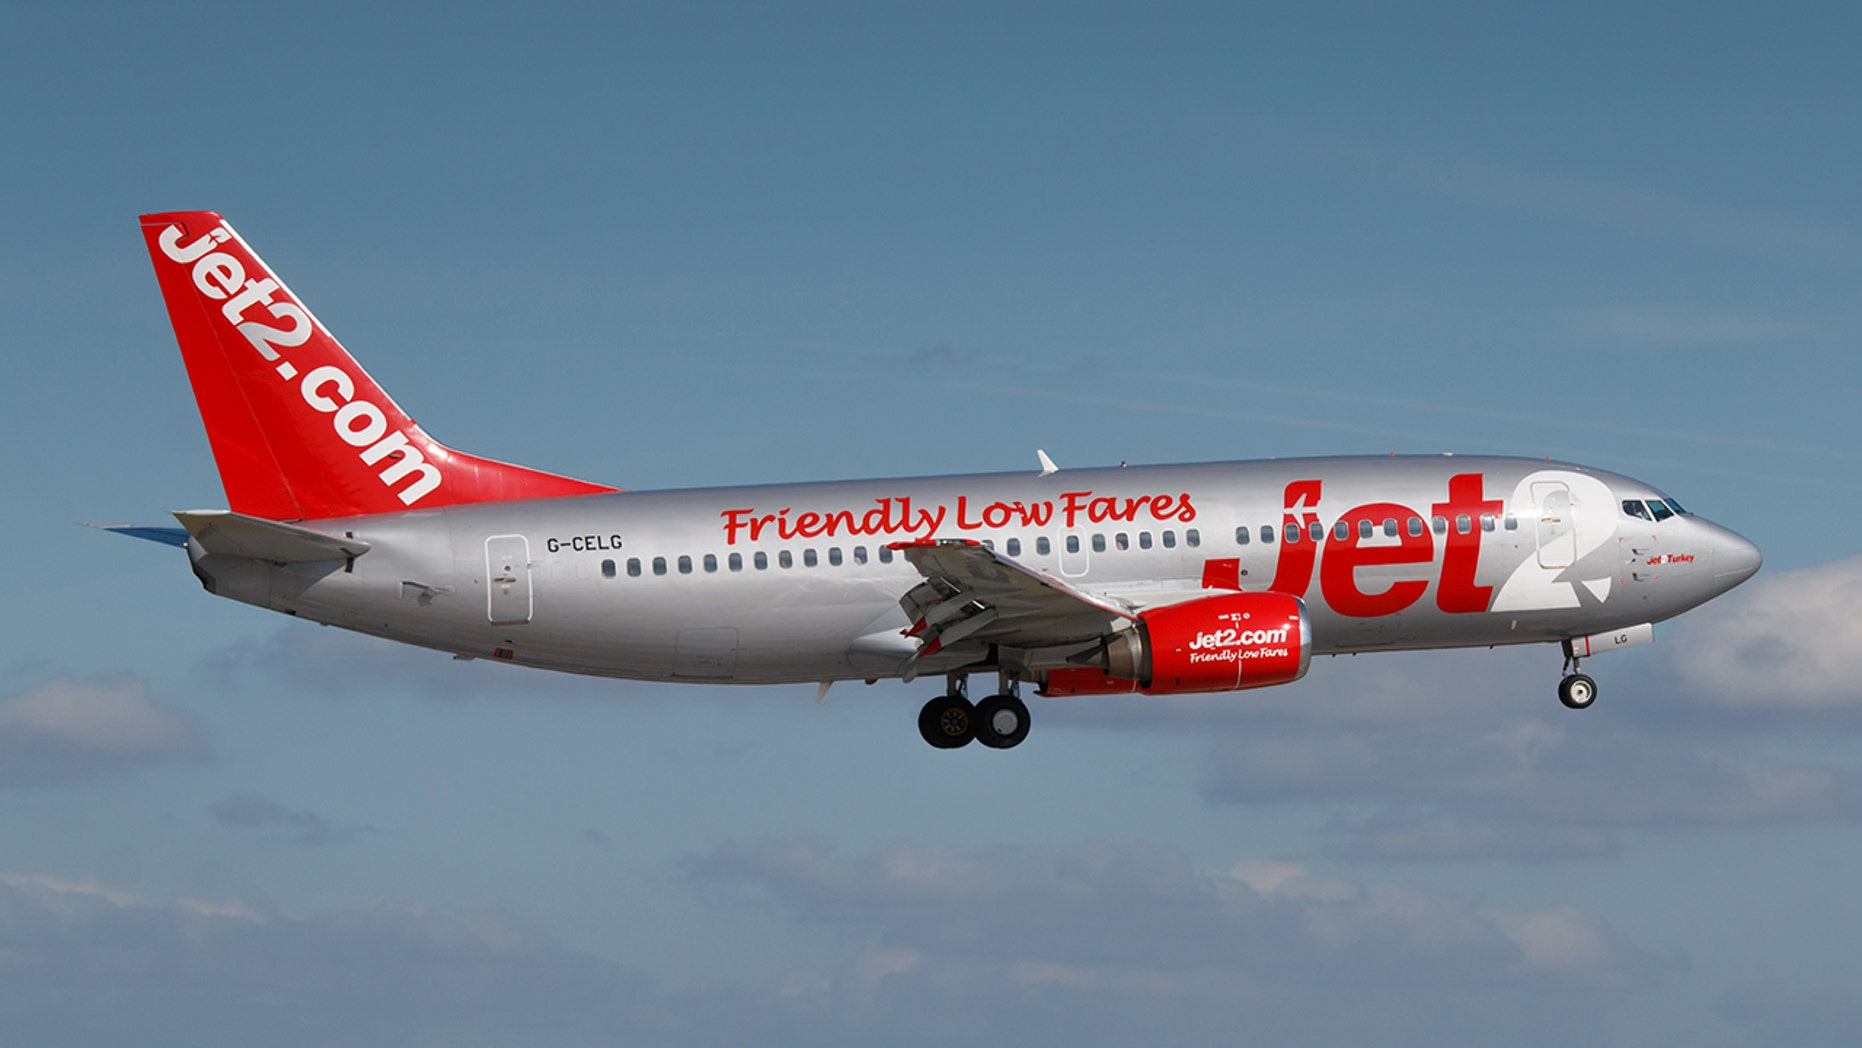 A stressed pilot completing his training is to blame for a botched Jet2 landing that caused damage to the aircraft.